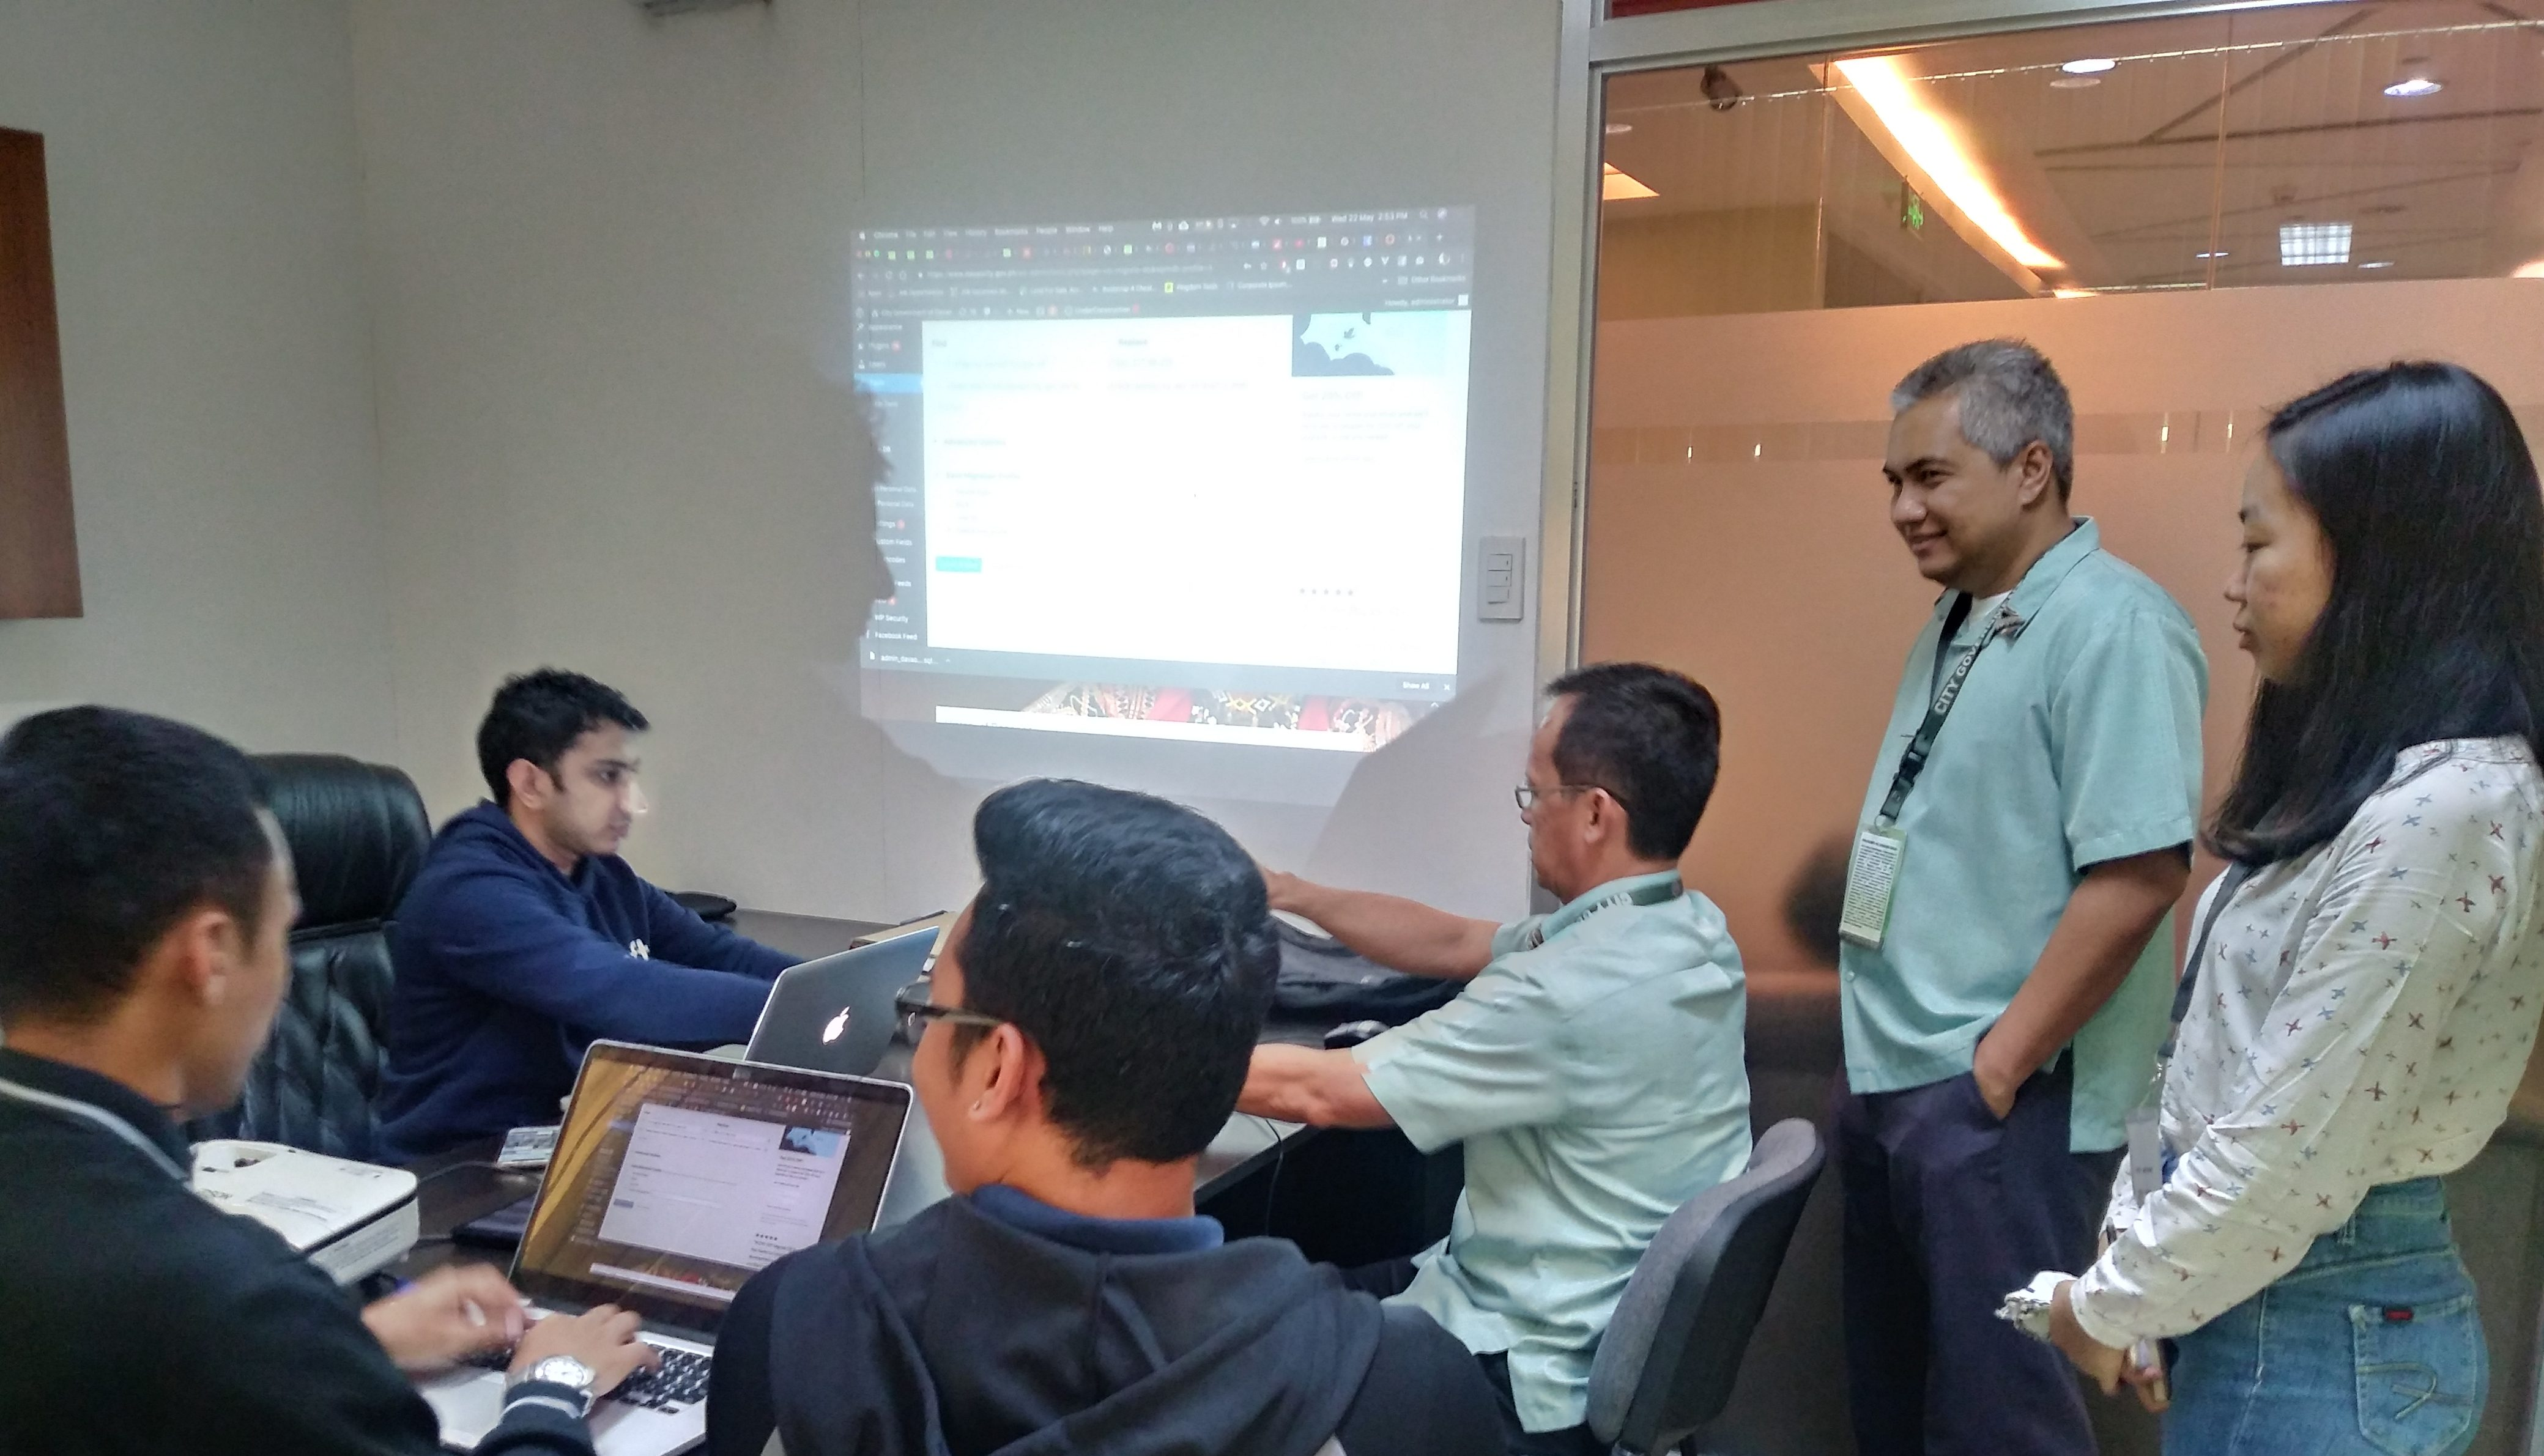 Davao City Website Technical Team Training at Infosoft Studio, May 22, 2019, 2:00 Pm.